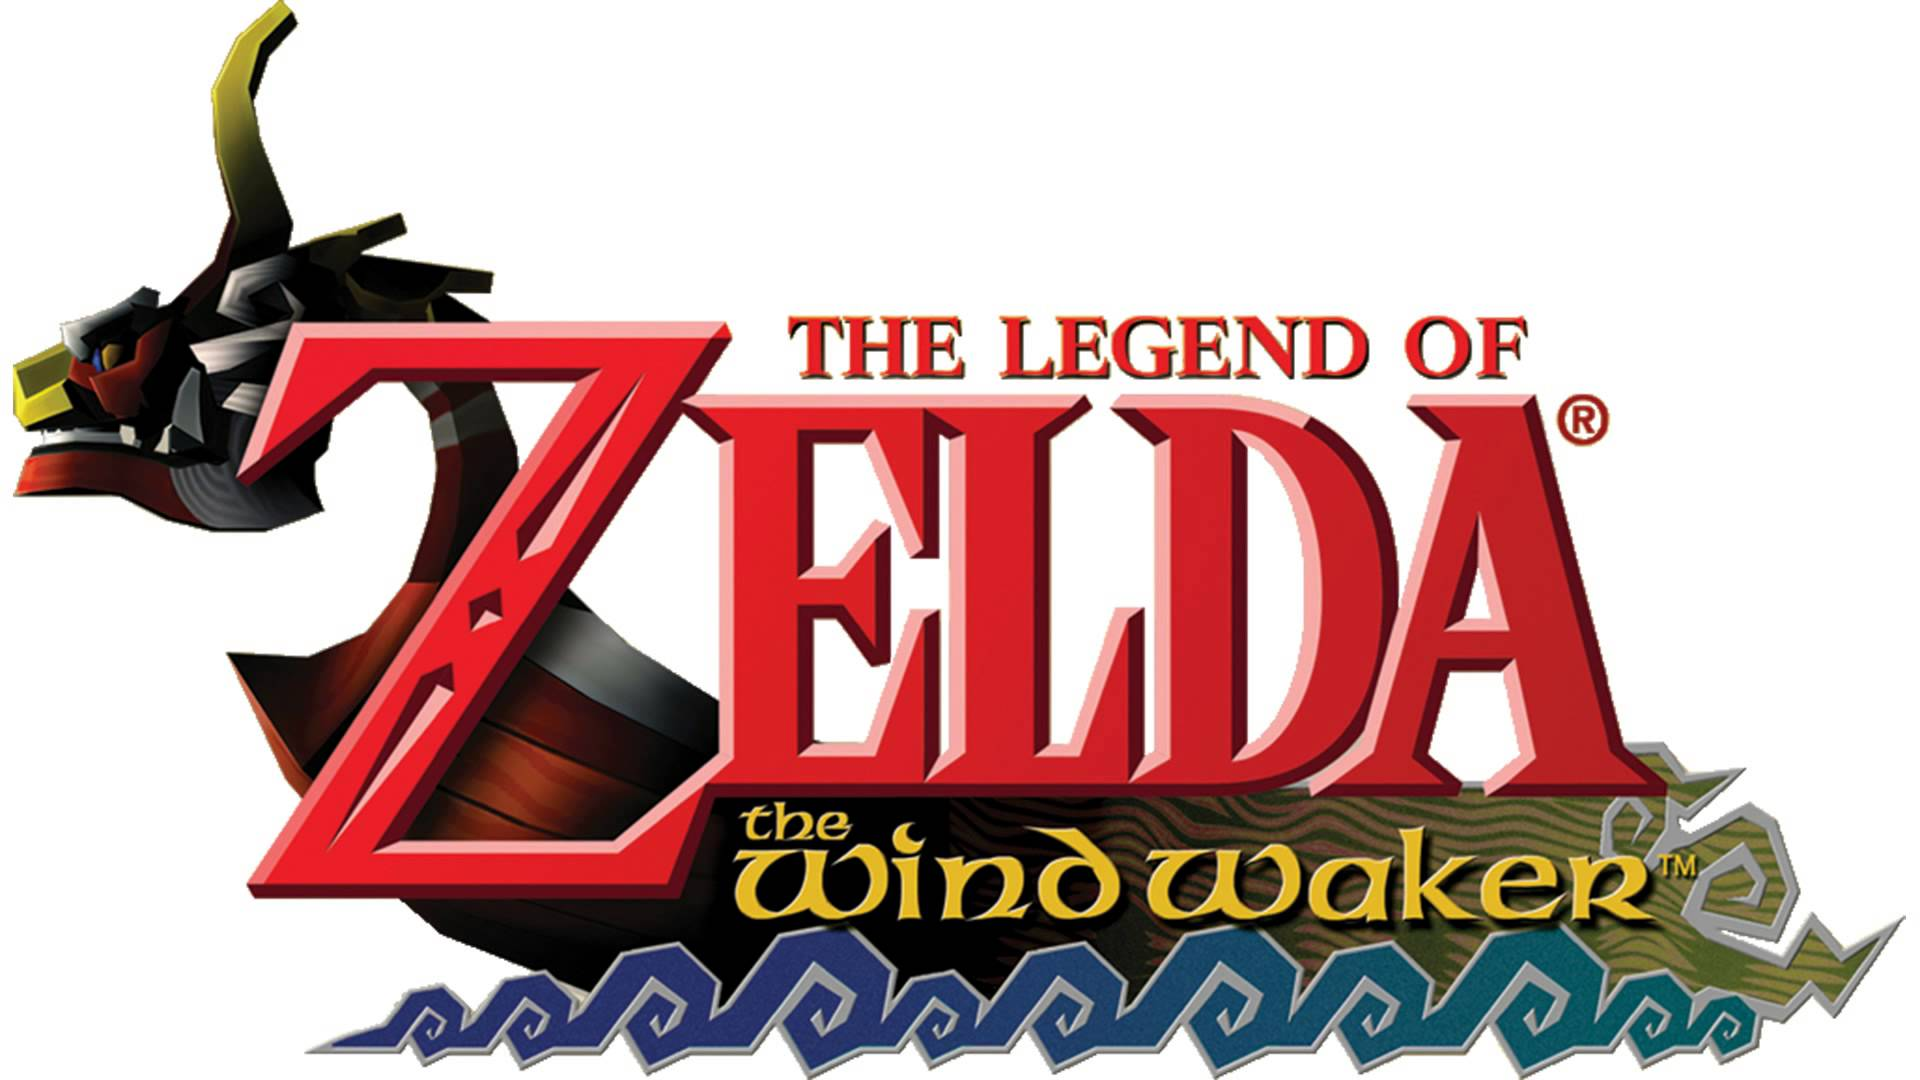 The Legend of Zelda The Wind Waker wallpaper 3